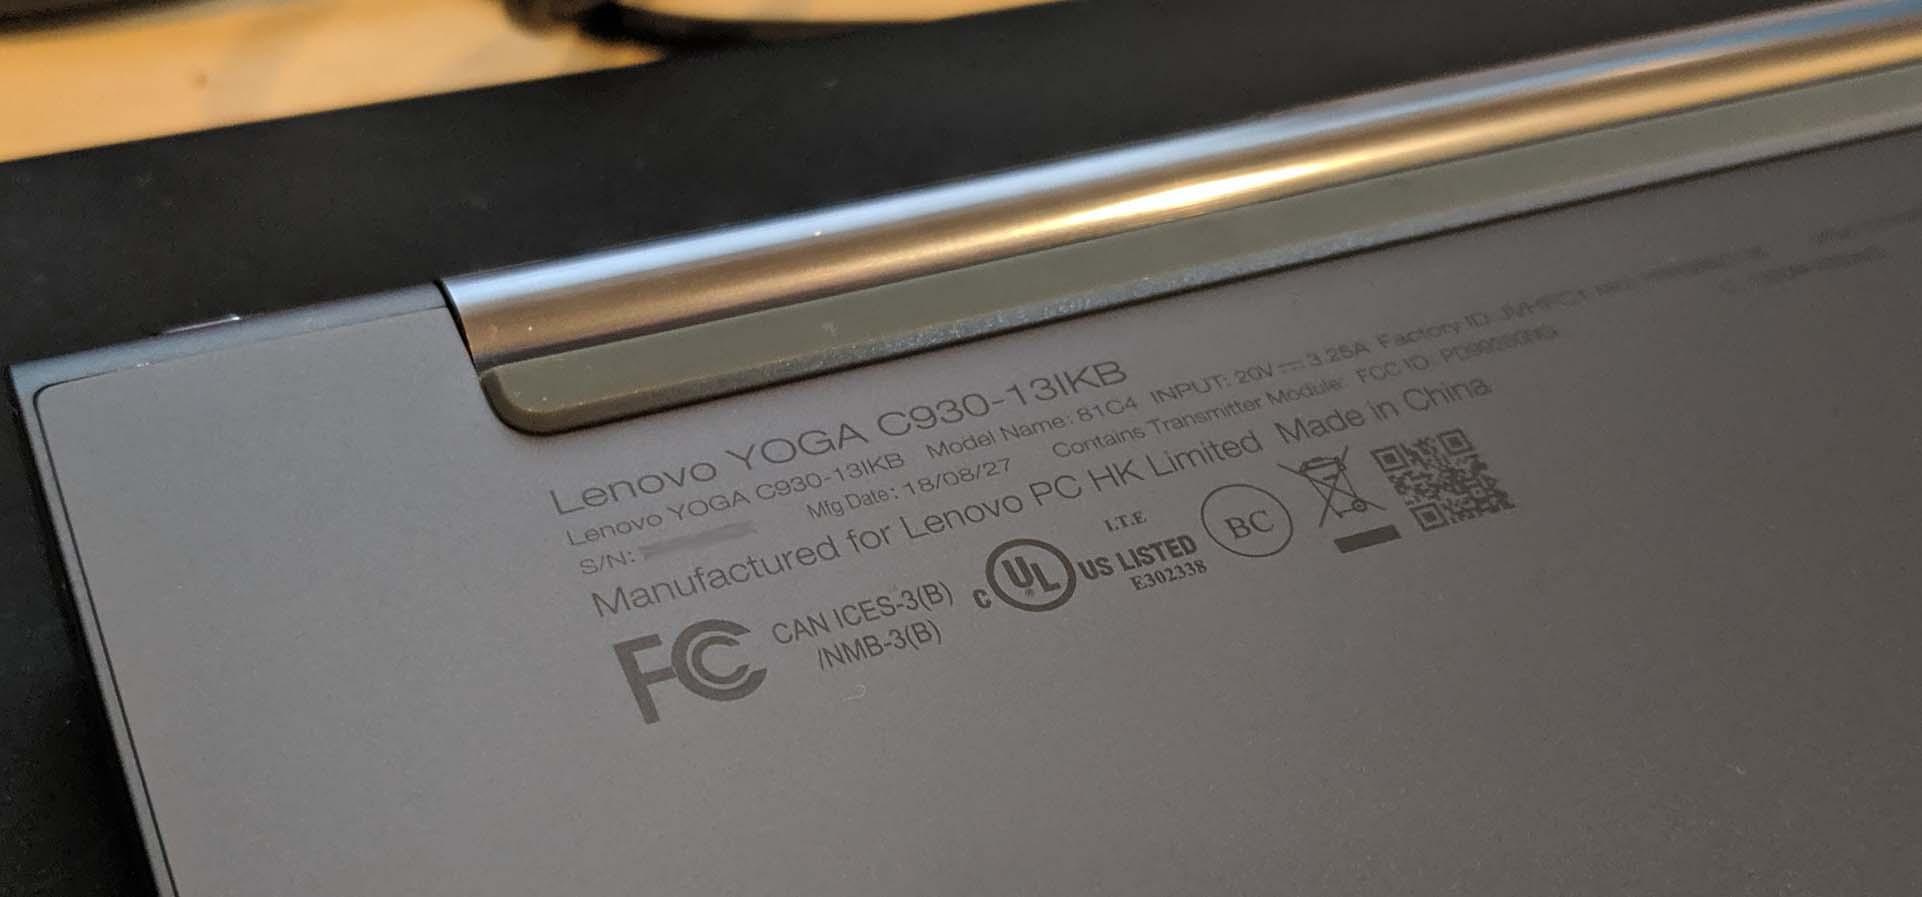 The bottom of a Lenovo Yoga laptop, showcasing its model number.